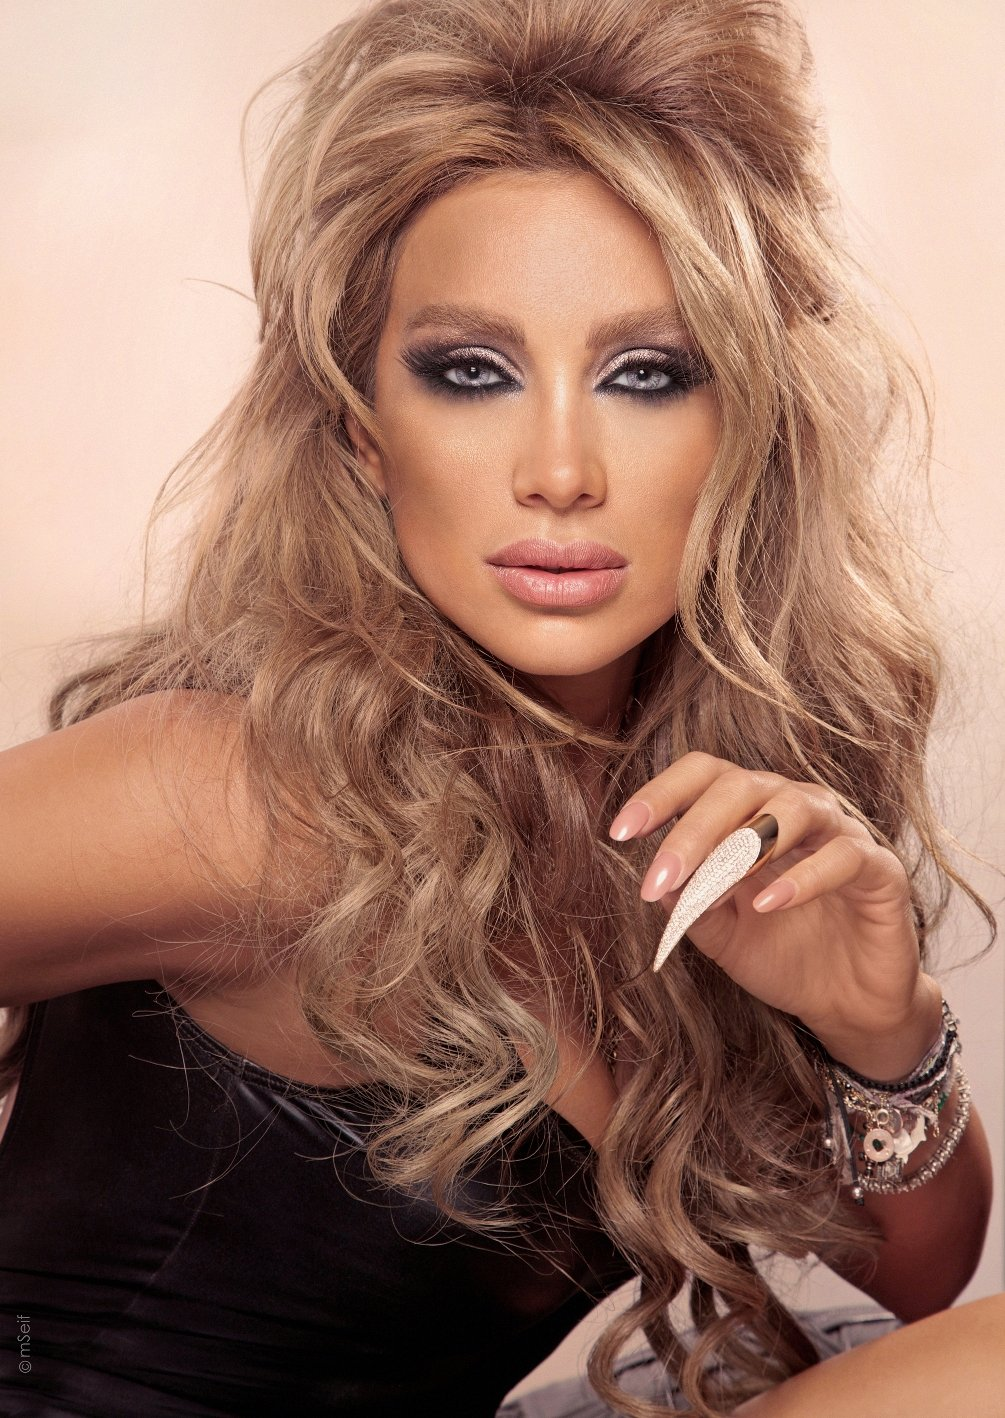 how tall is maya diab